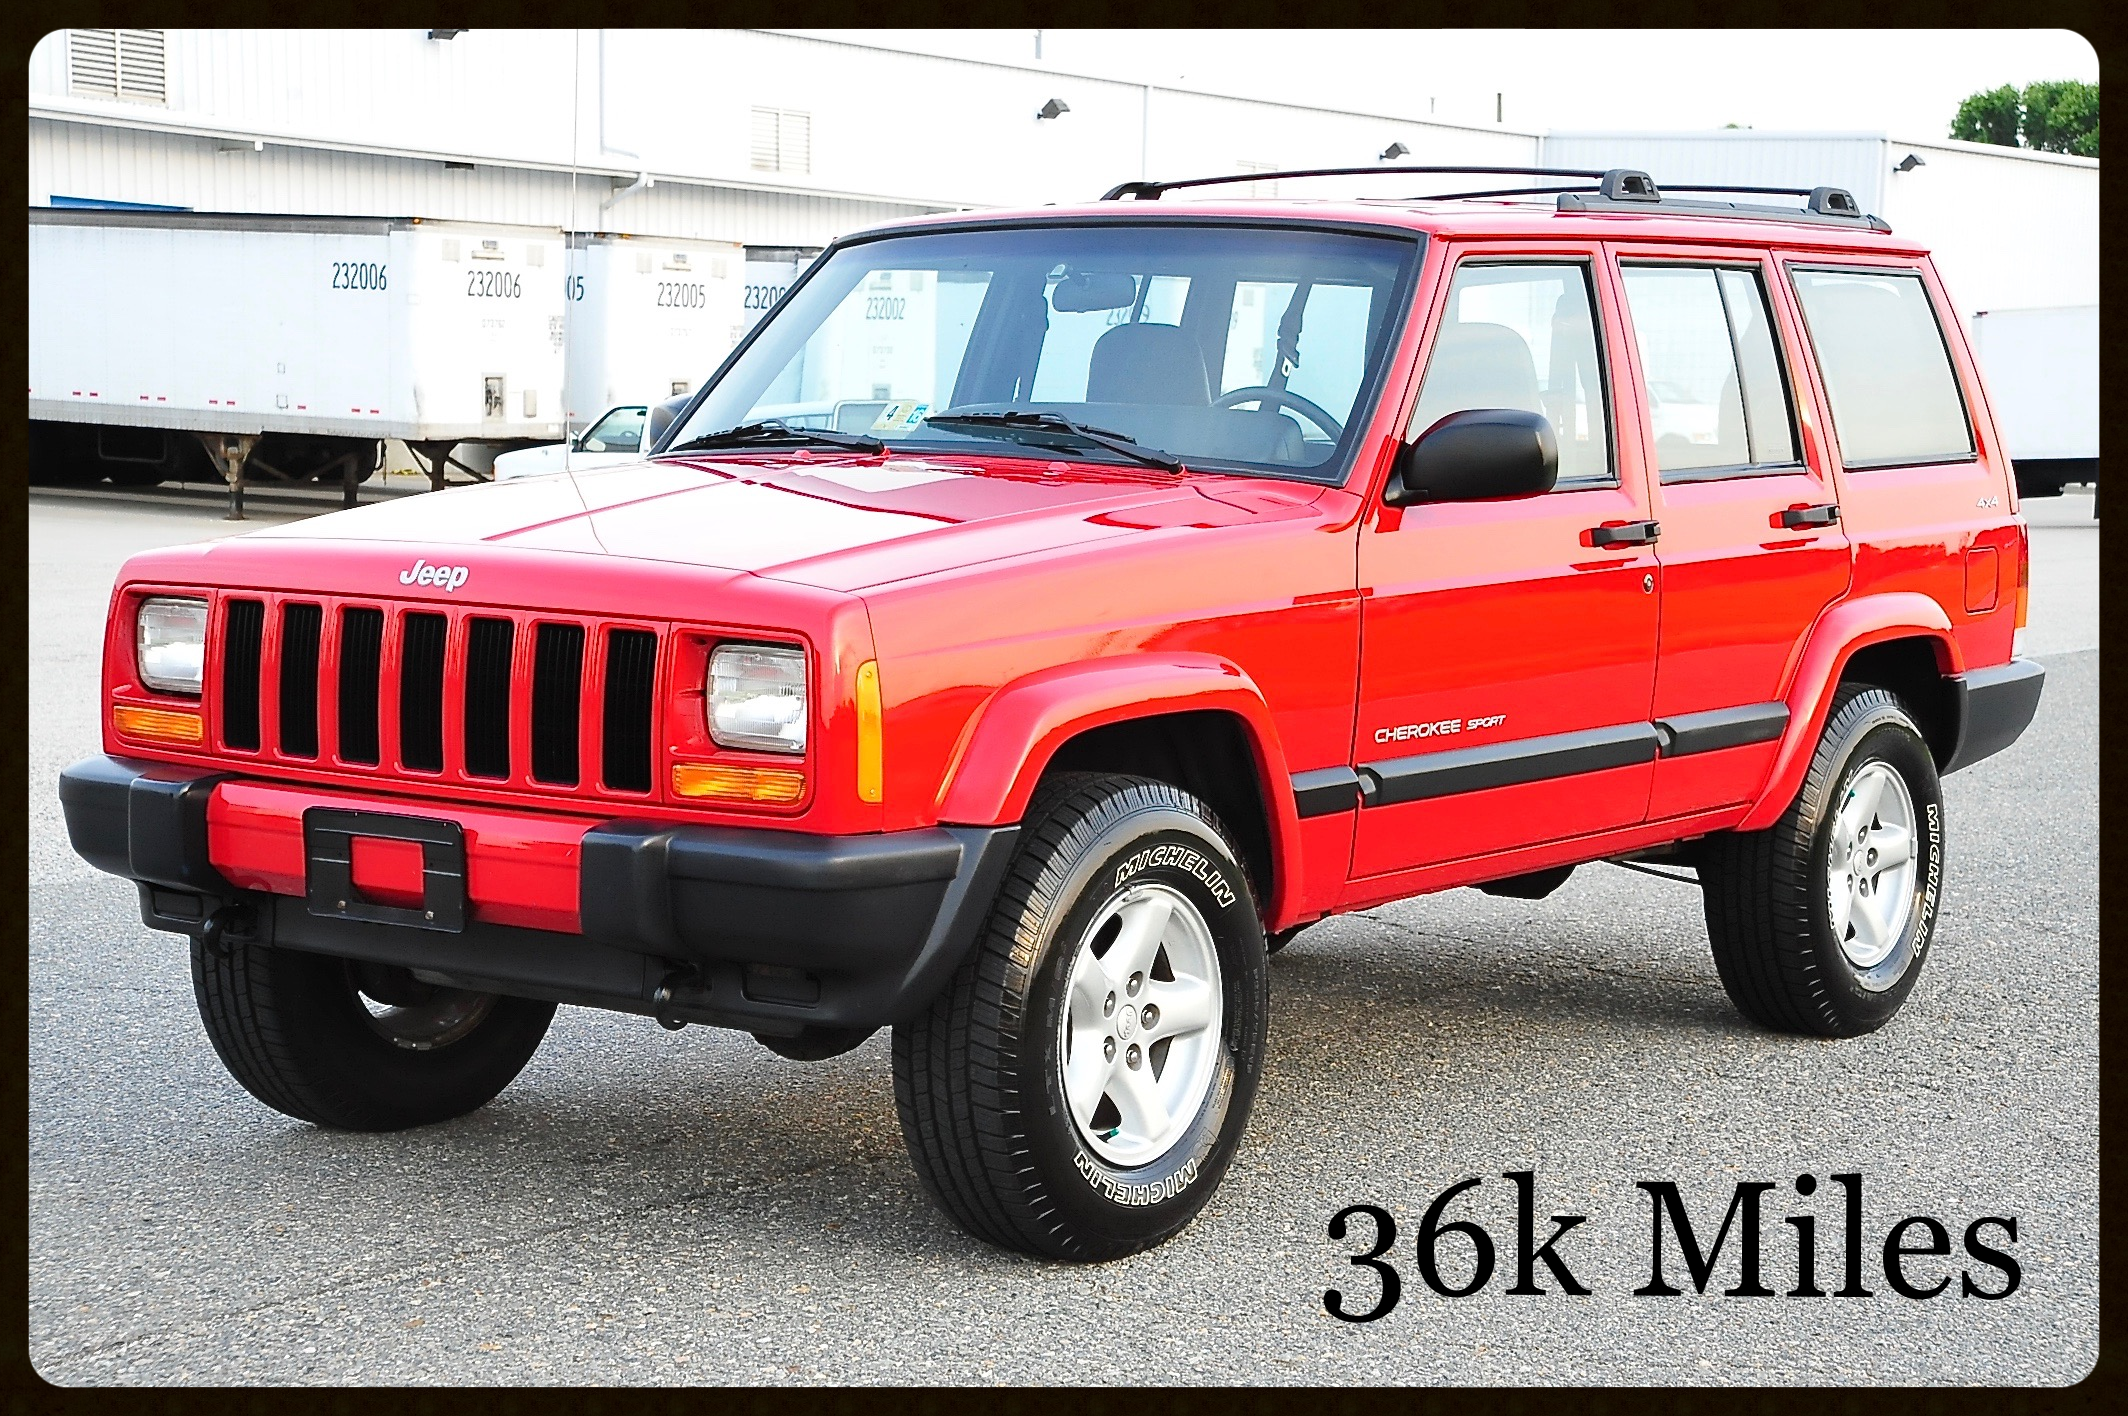 ONLY 36K MILES....Very Rare Up Country Package...This Jeep Is Brand New...Click for Photos and Video